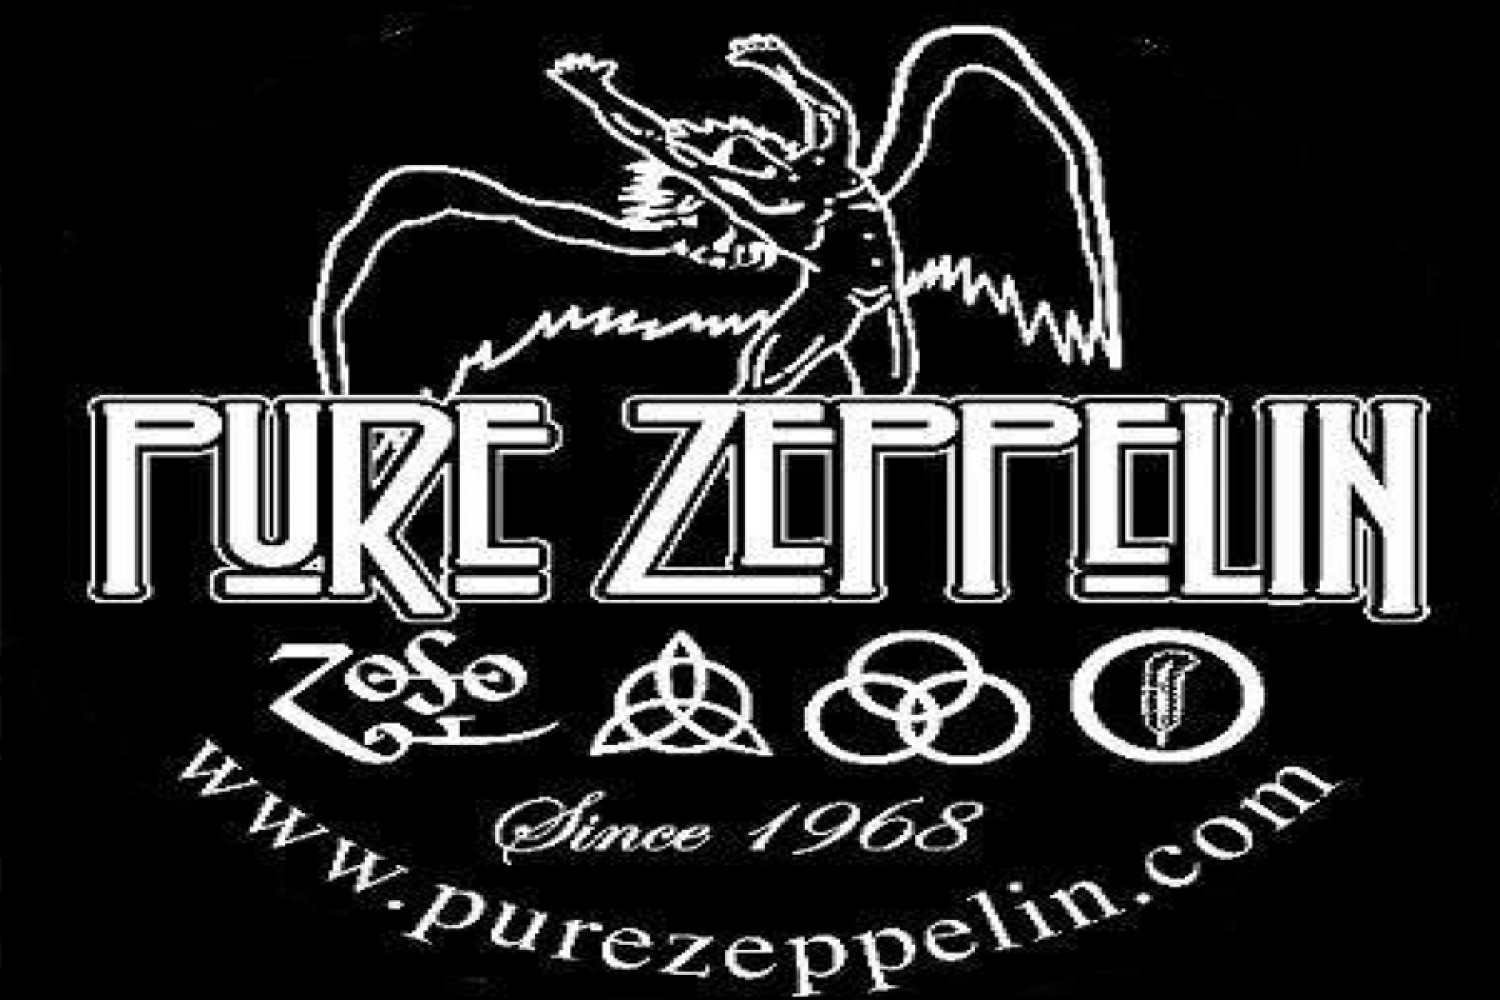 The pure led zeppelin experienceshow the lyric theatre anyone lucky enough to see led zeppelin in concert in the 70s came away changed visceral and tough the music entered your body through bone and muscle voltagebd Images